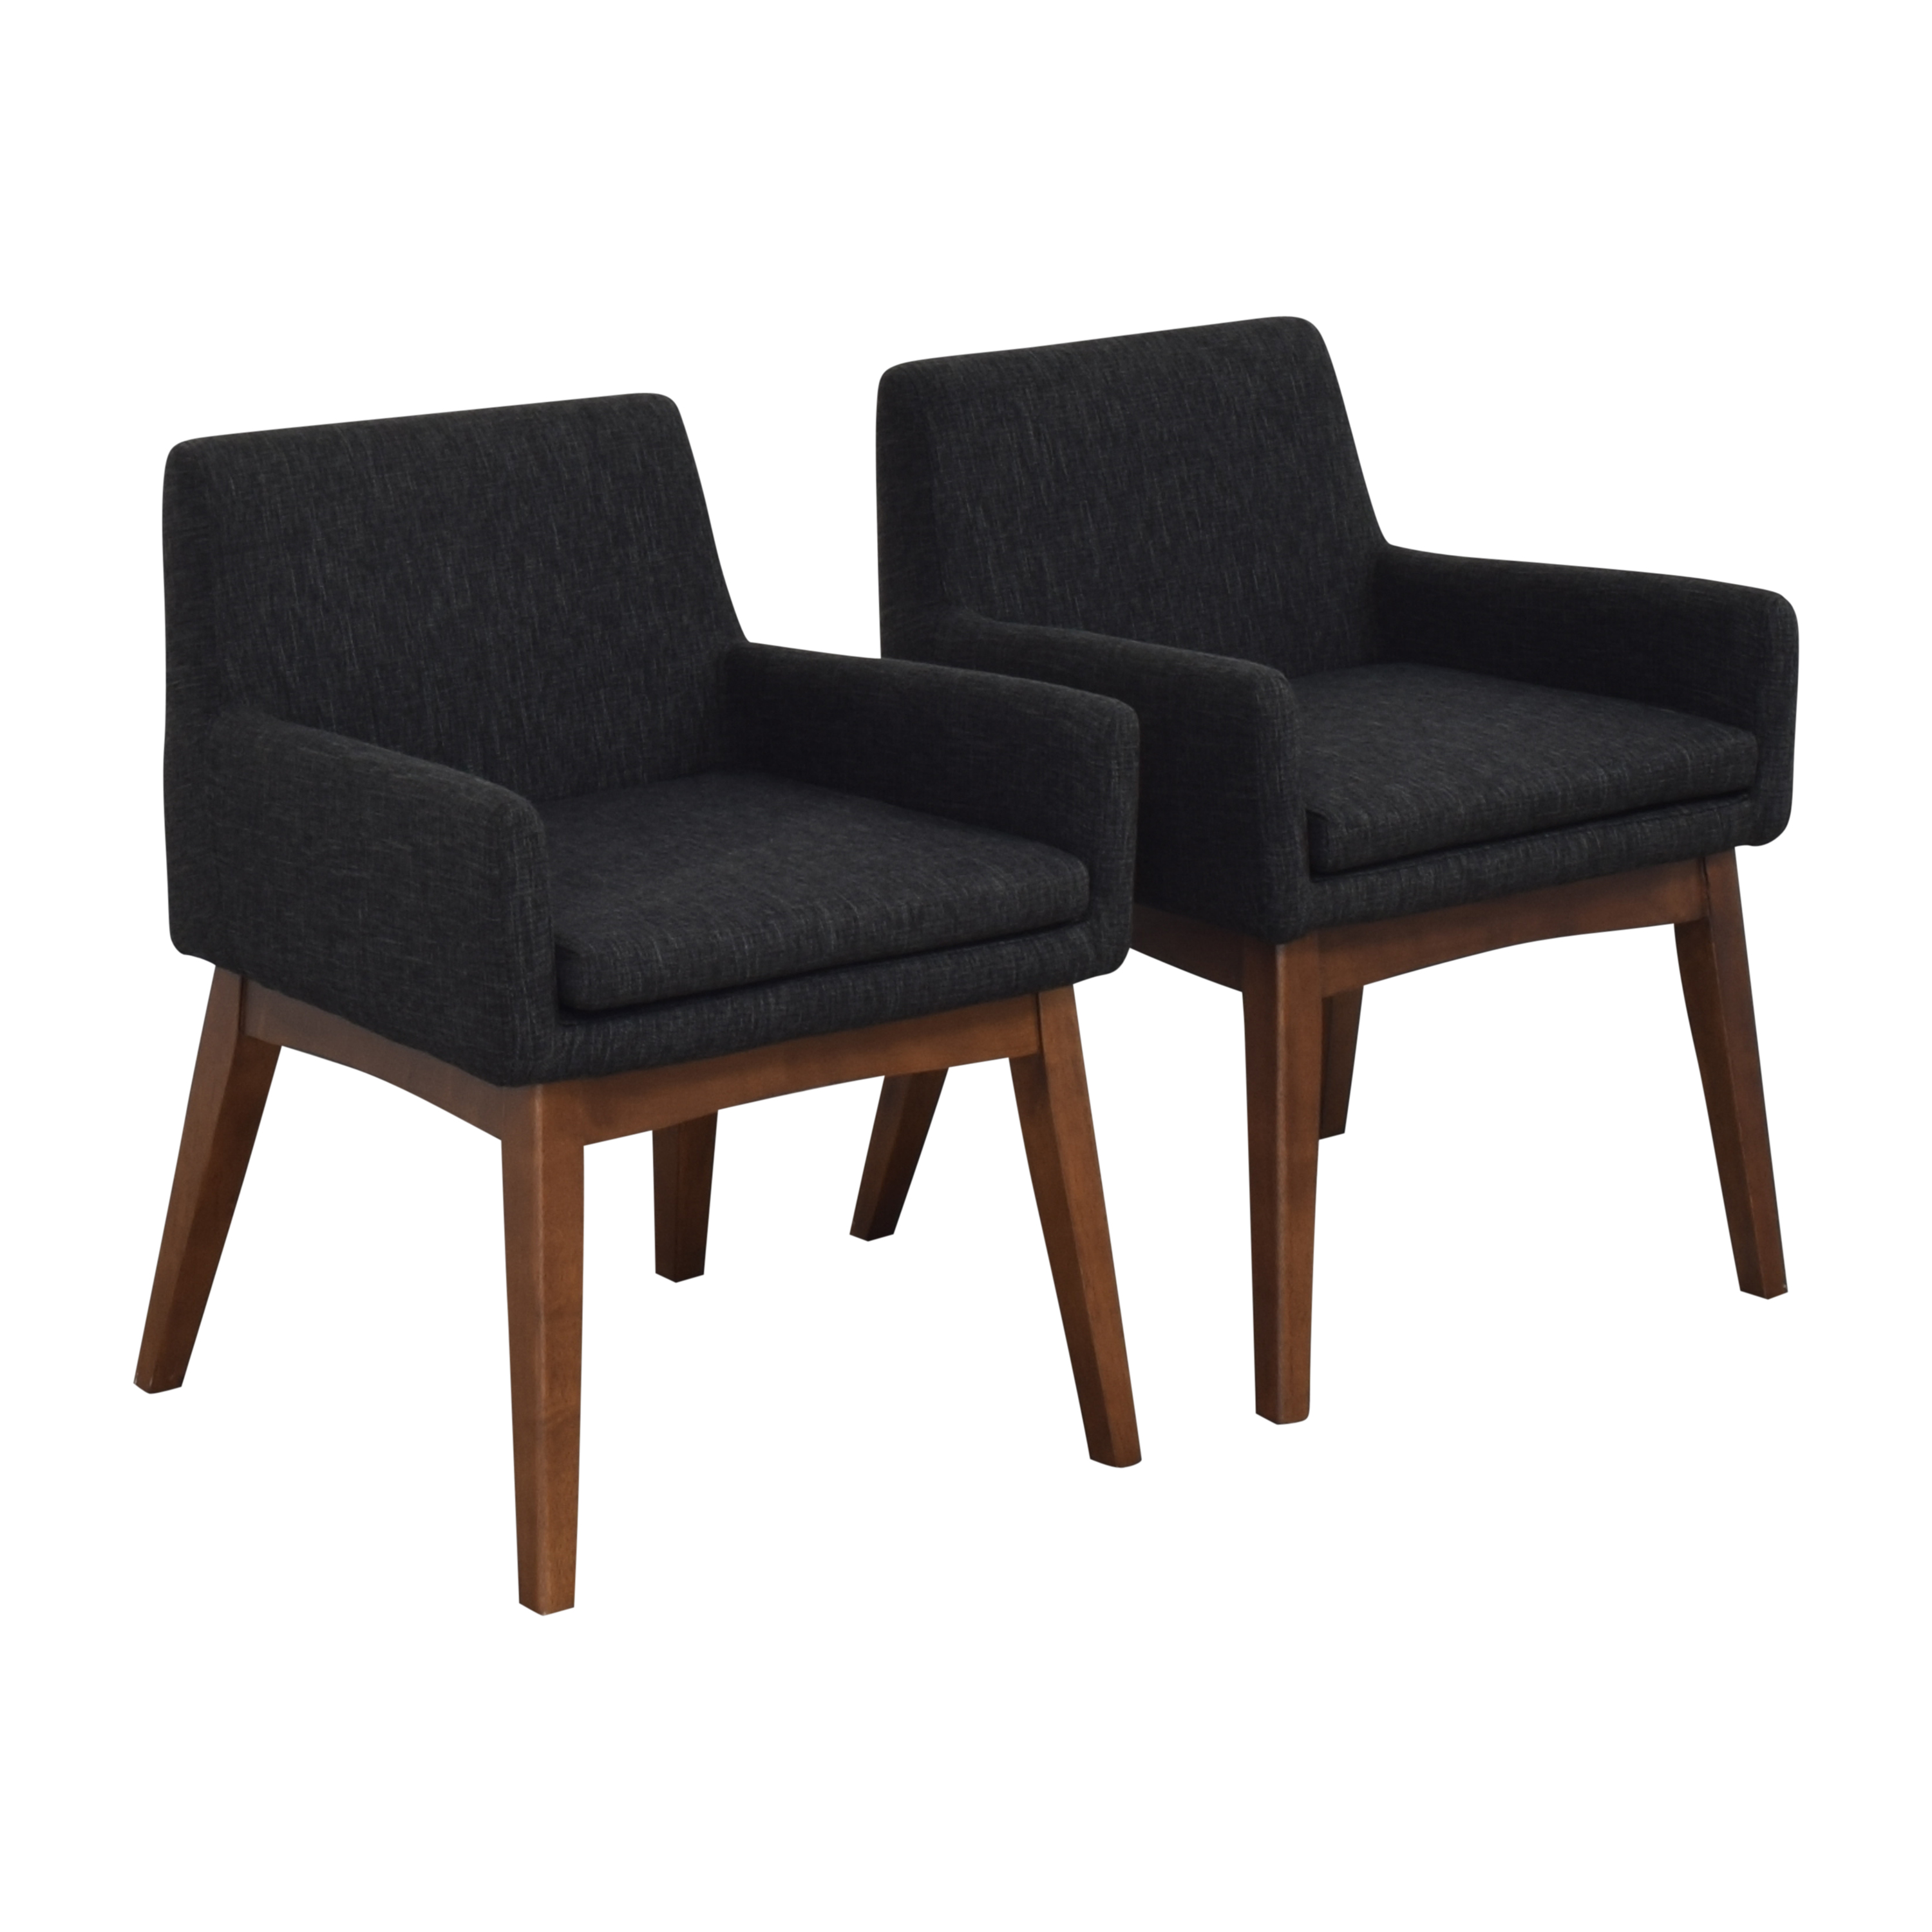 Article Article Chanel Dining Arm Chairs price